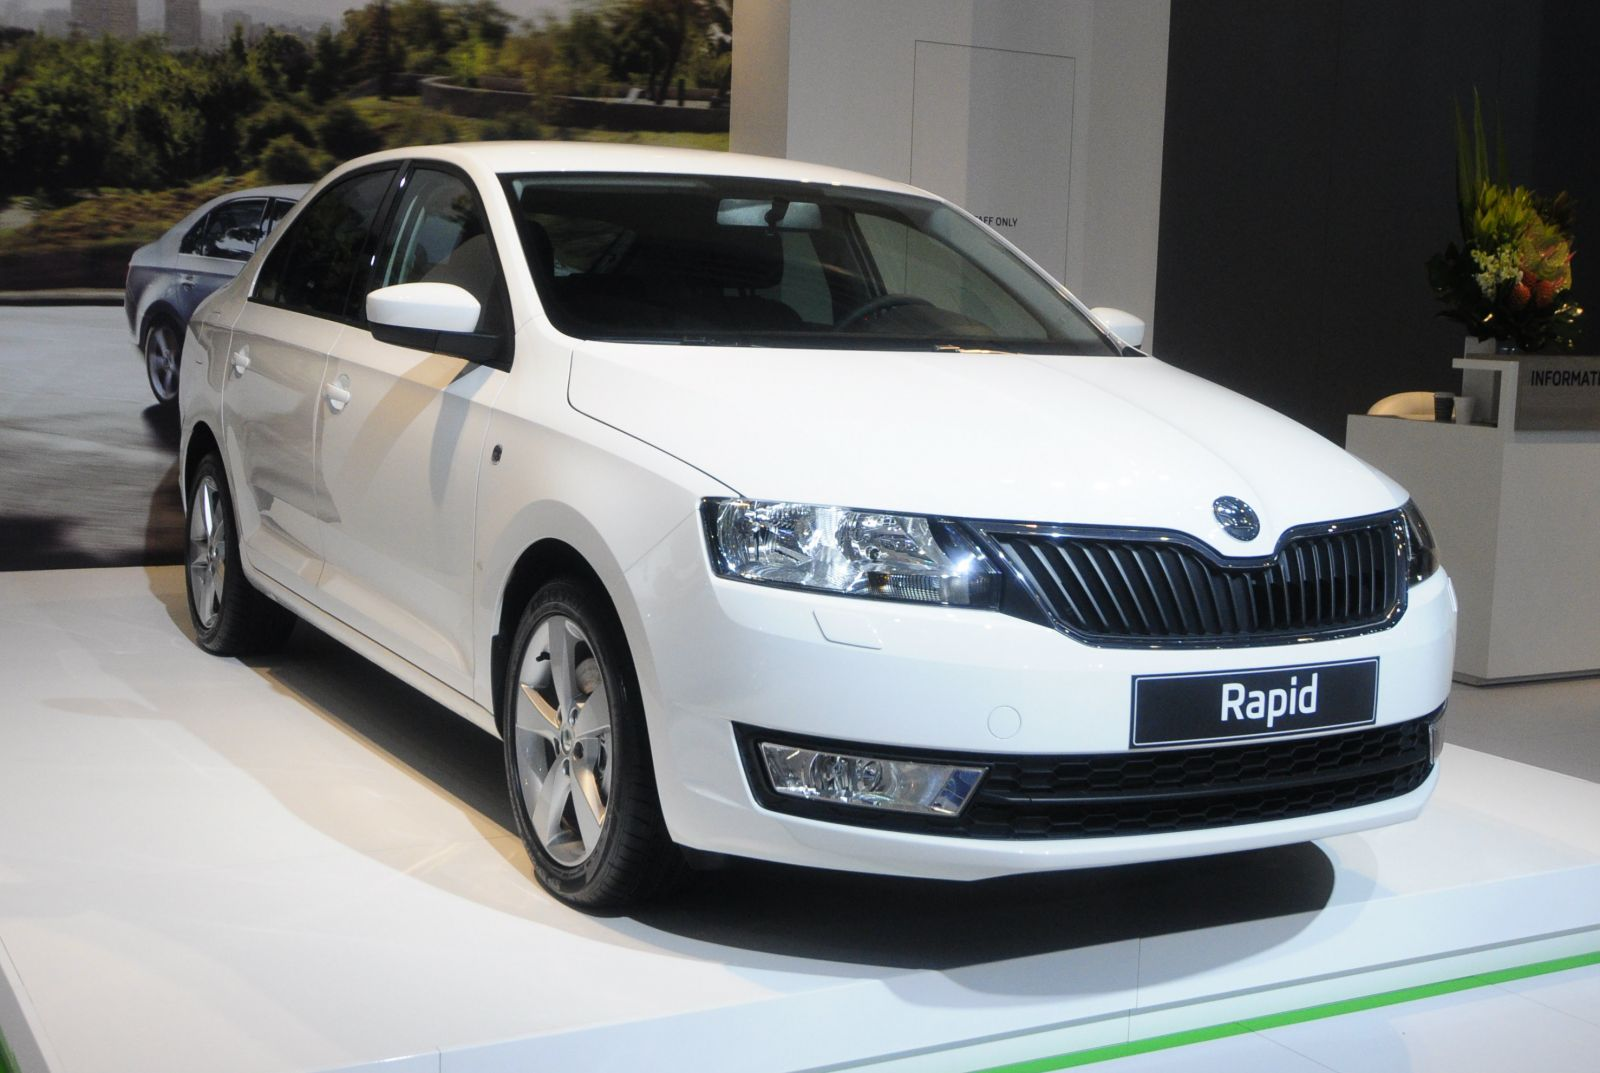 2017 skoda rapid car photos catalog 2018